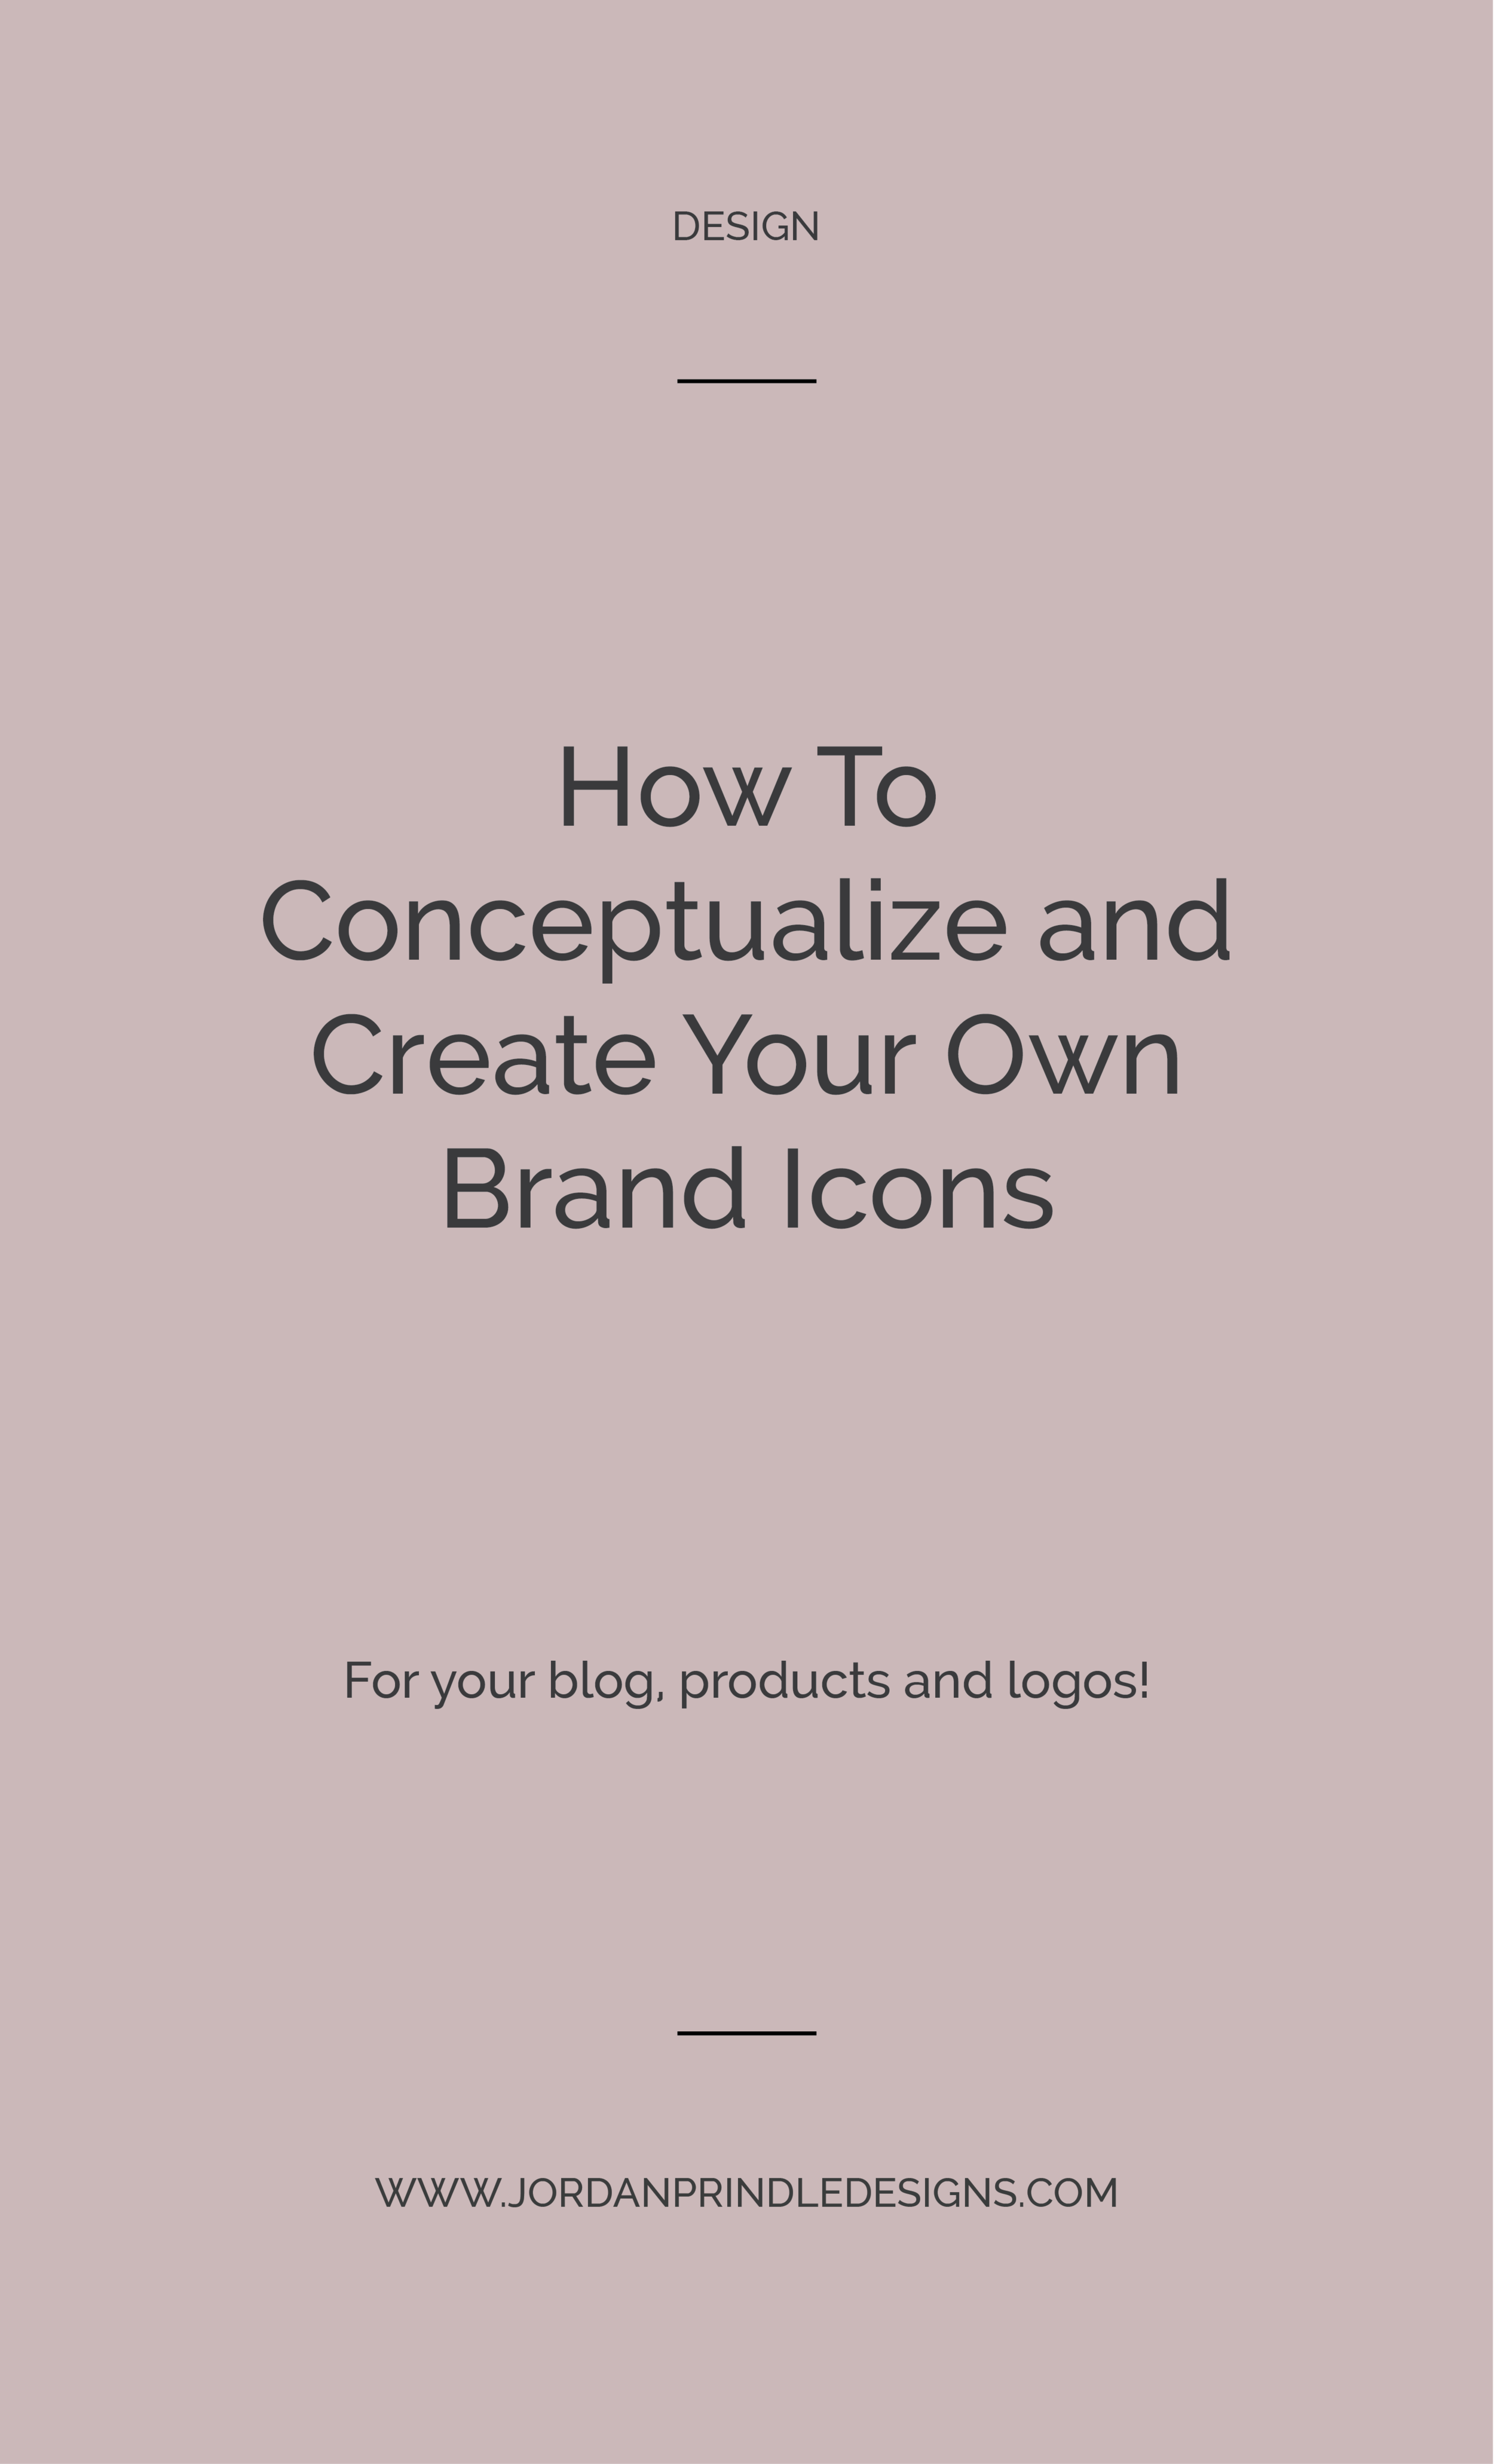 How to Conceptualize and Create Icons   In order to design icons for your creative business there are a few key steps you'll want to take from conceptualizing ideas to software resources. Read the full blog post at www.jordanprindledesigns.com #designtips #branding #smallbusinessbranding